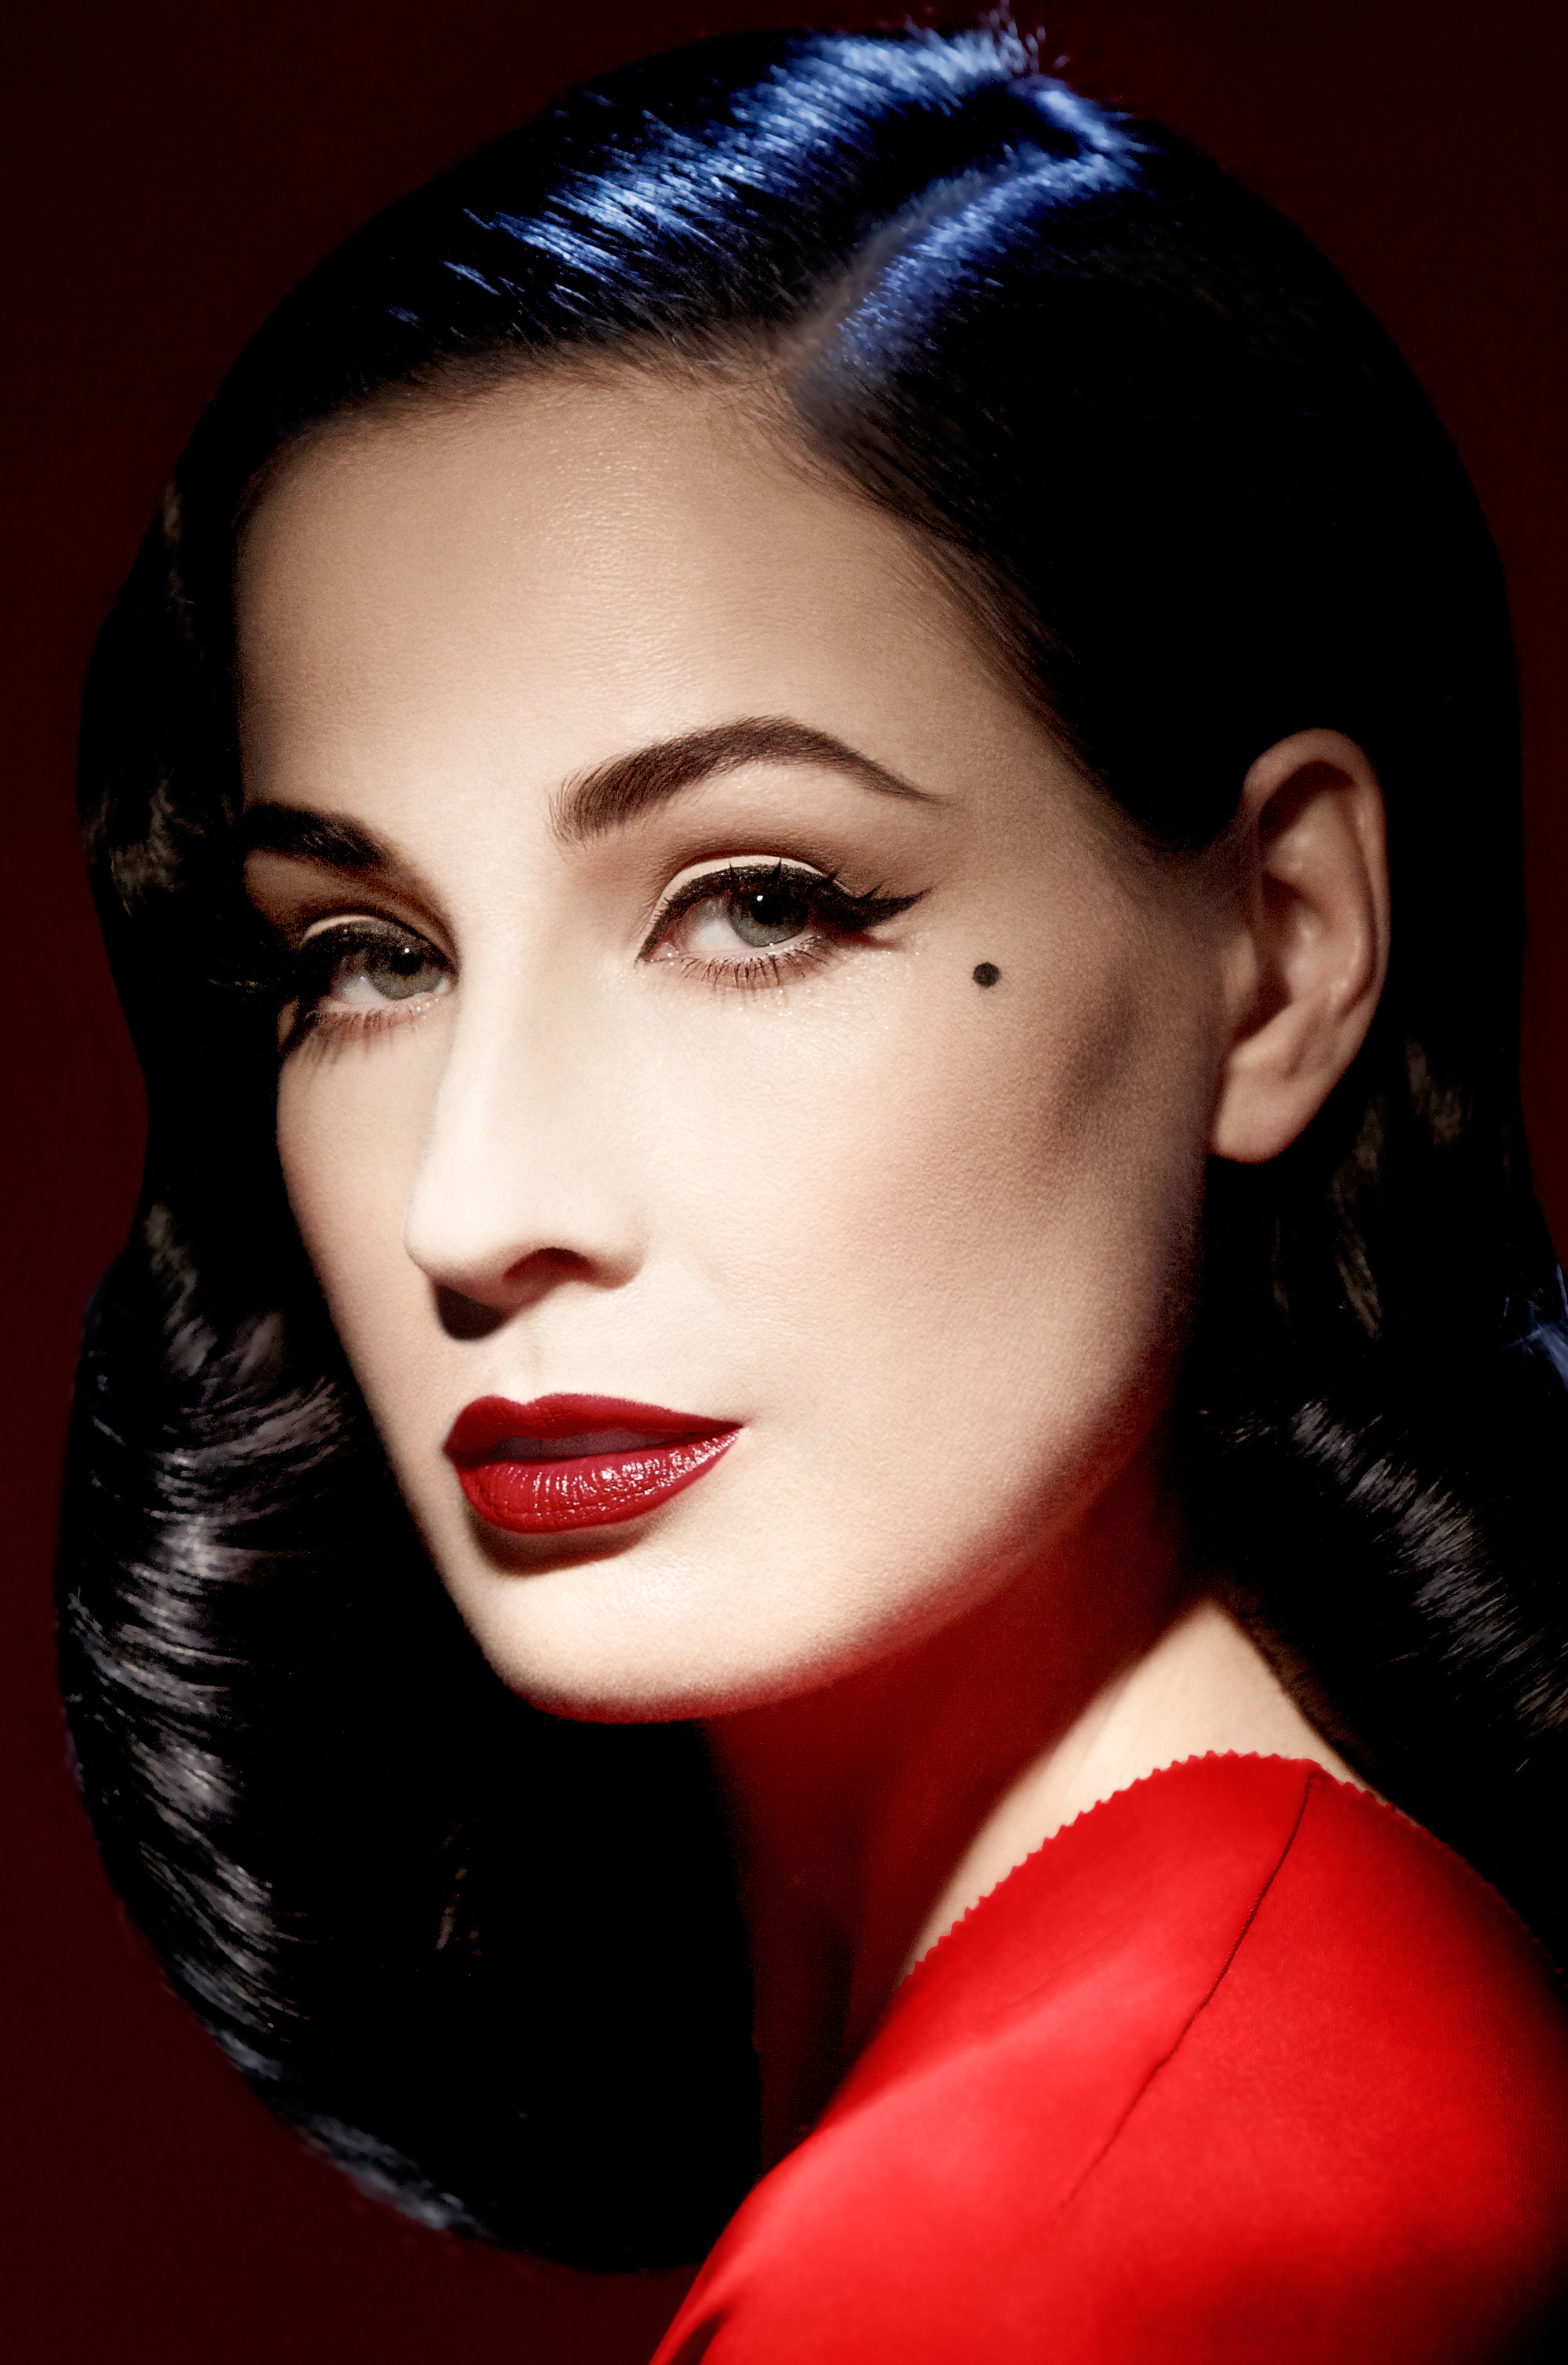 Five things we learned about Dita Von Teese